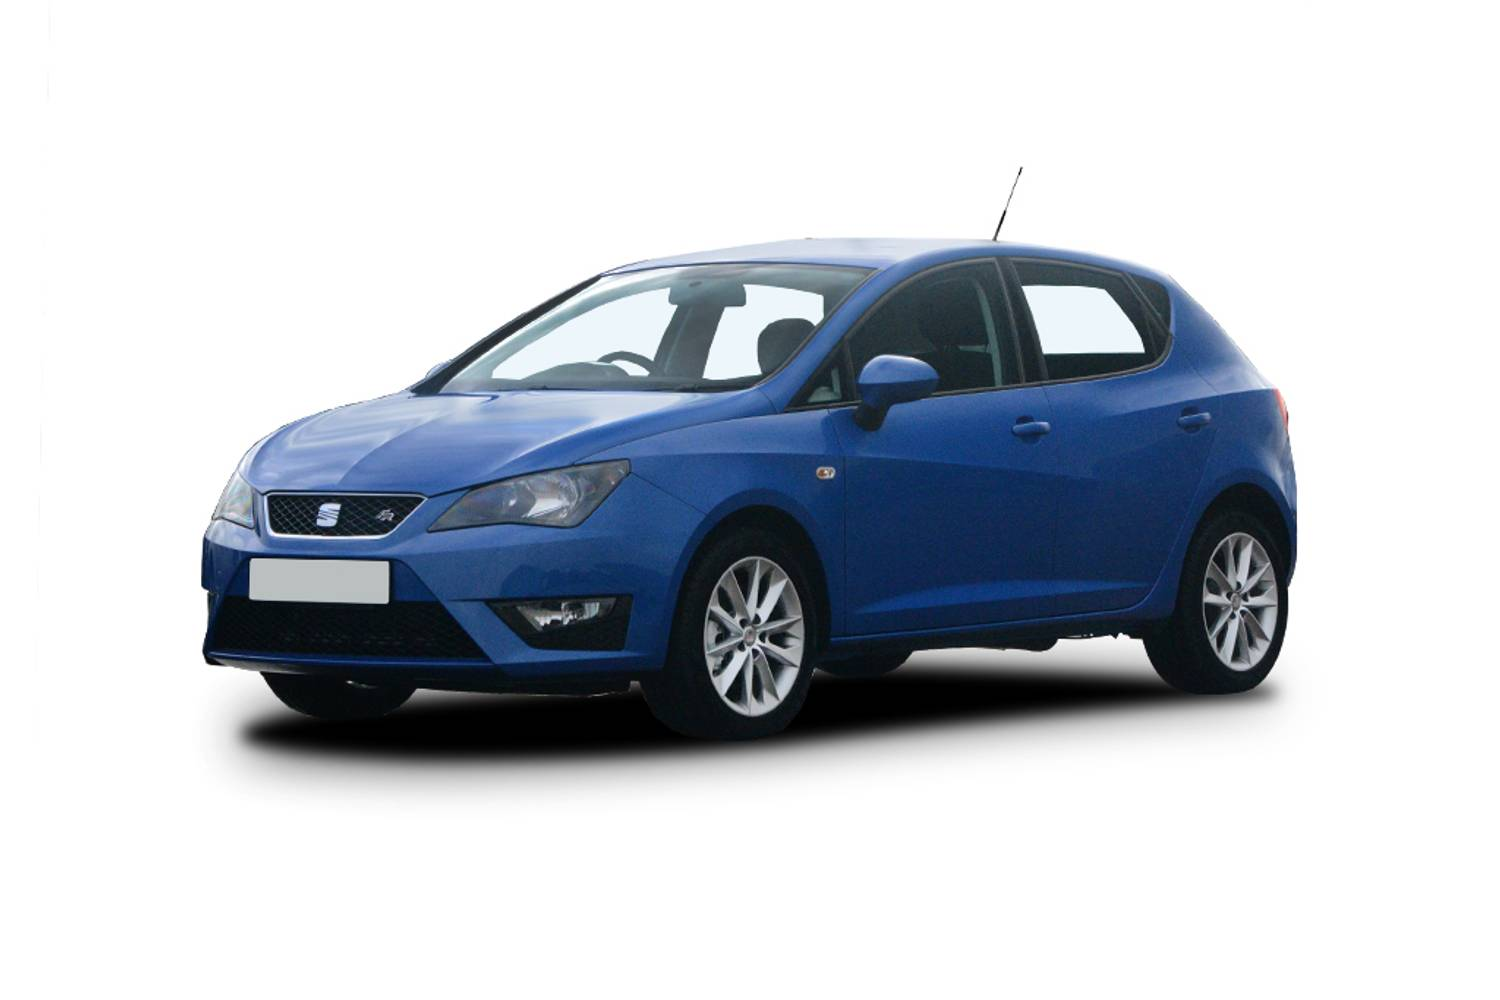 new seat ibiza hatchback special edition 1 0 sol 5 door. Black Bedroom Furniture Sets. Home Design Ideas